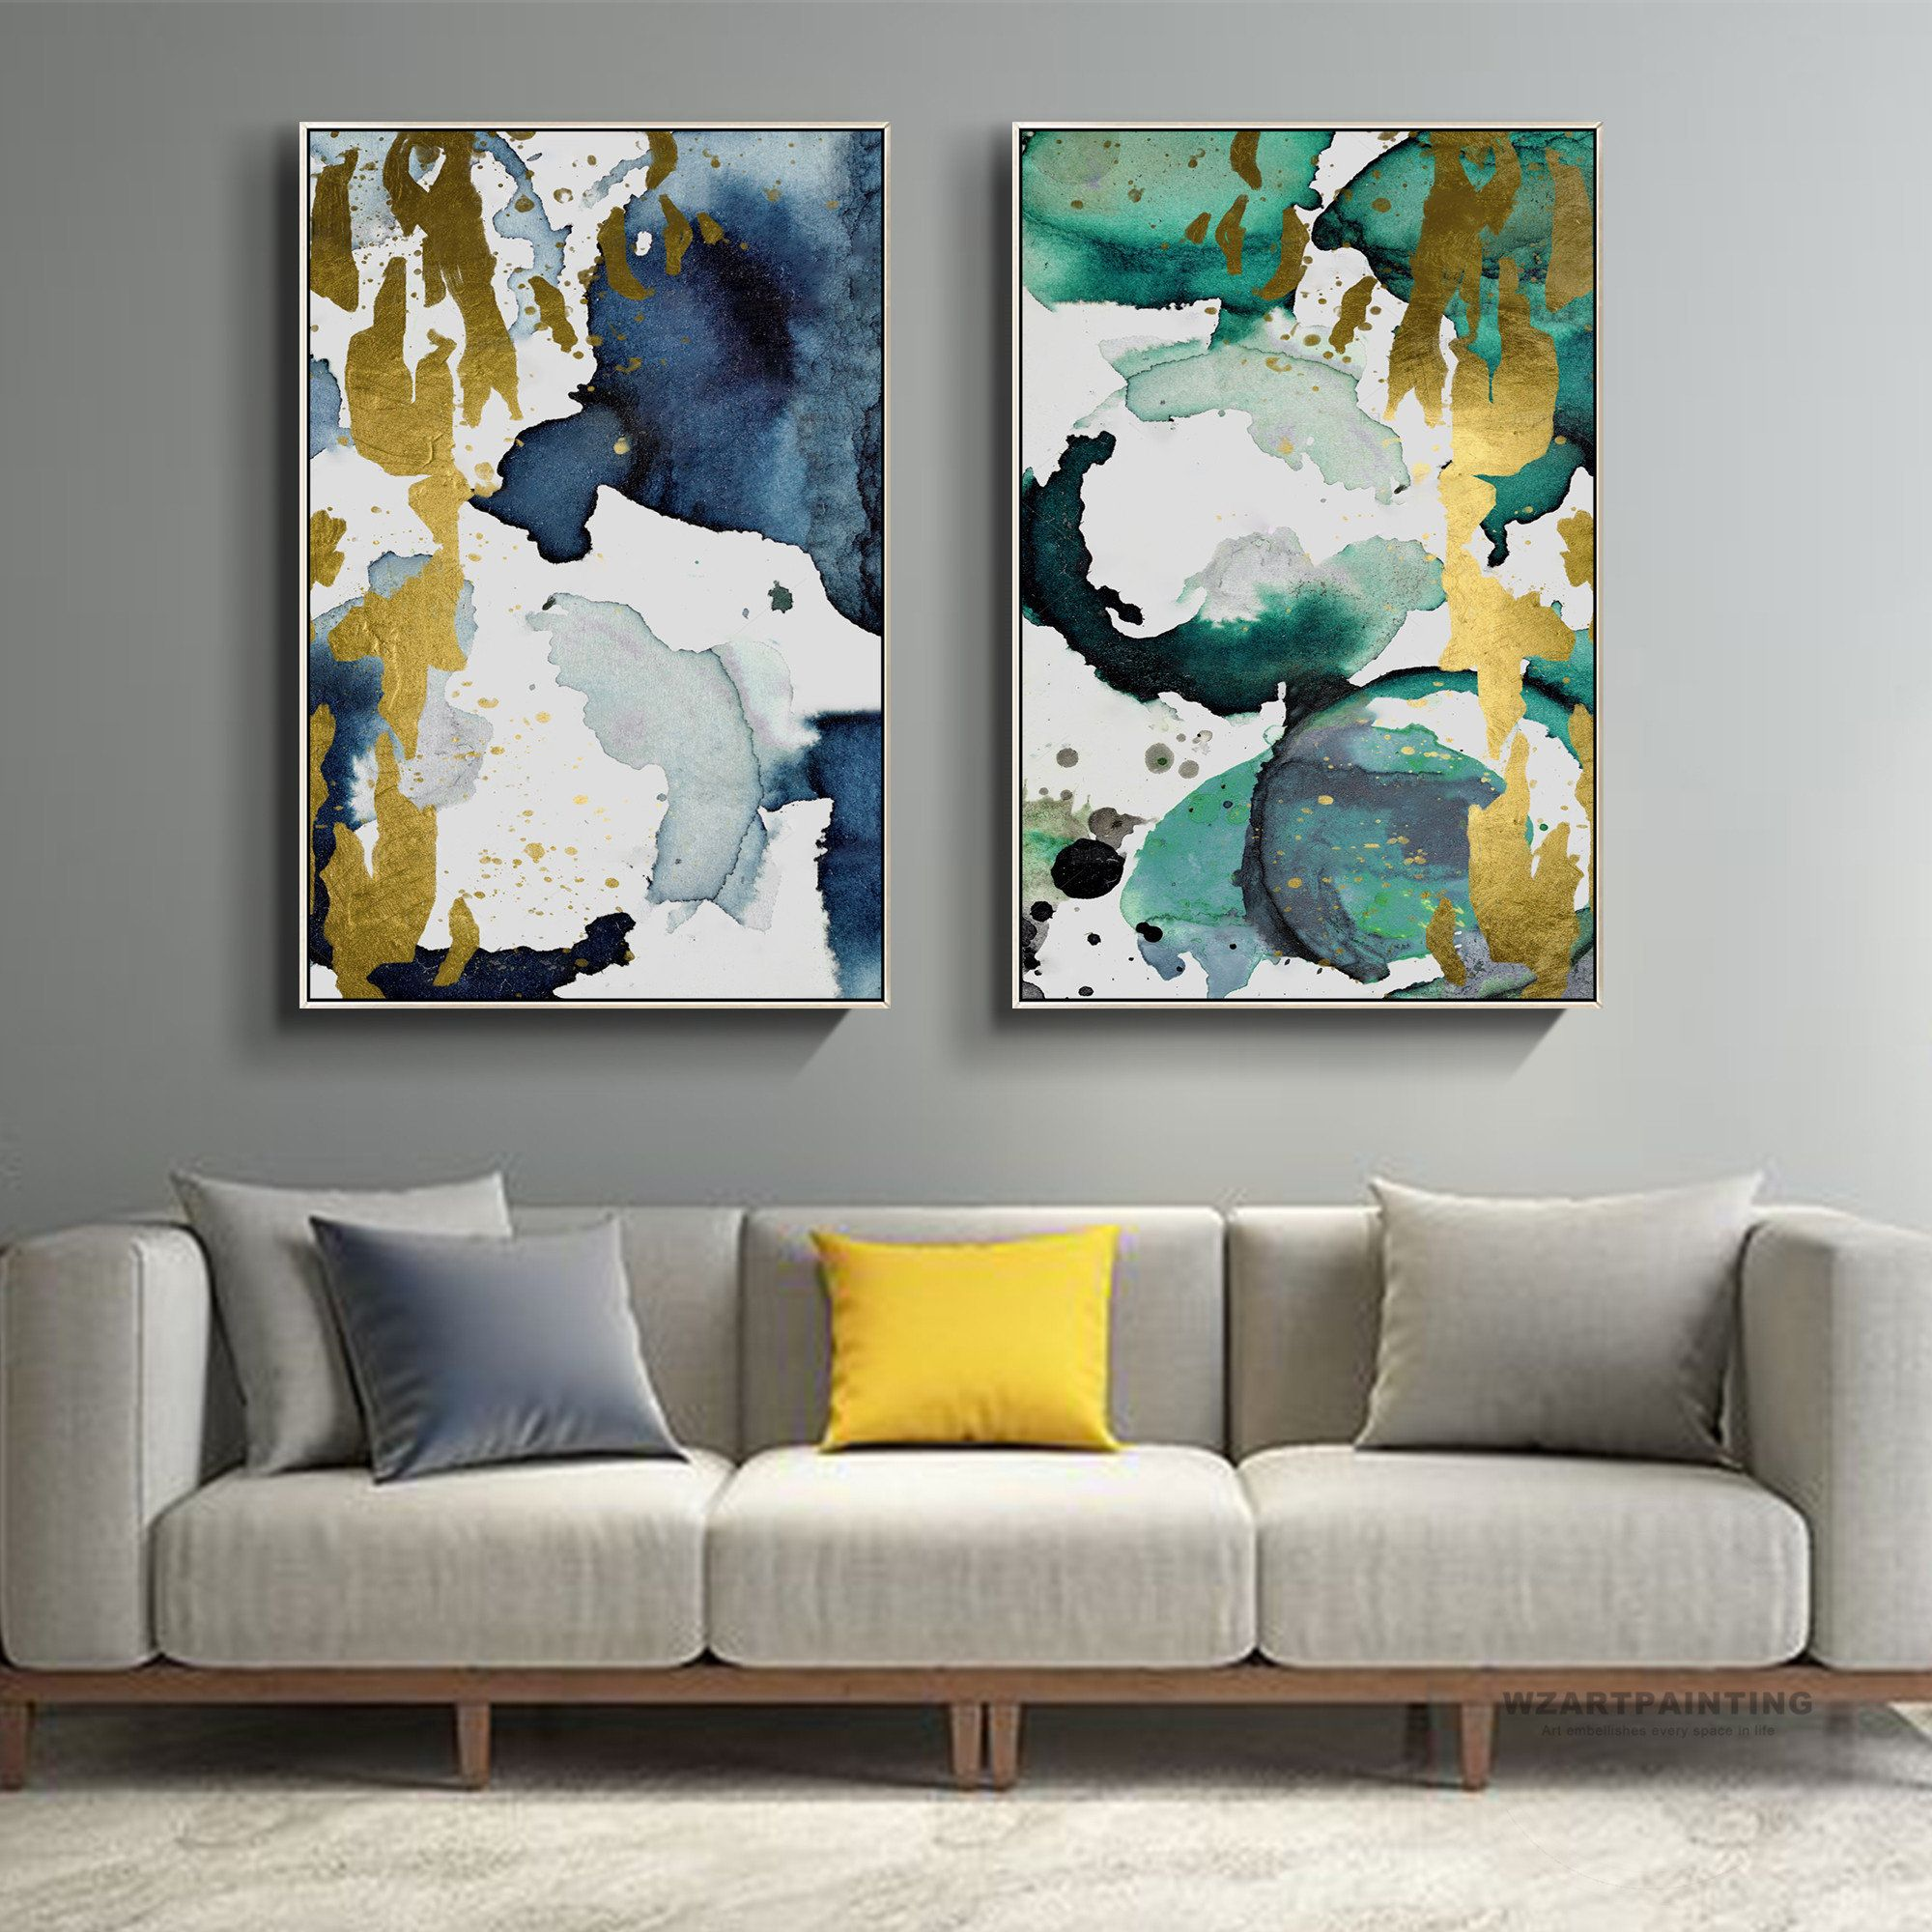 Framed Wall Art Set Of 2 Prints Abstract Gold Green Navy Blue Print Painting Gold Art Pictures On Canvas Wal Framed Wall Art Sets Wall Art Sets Canvas Wall Art